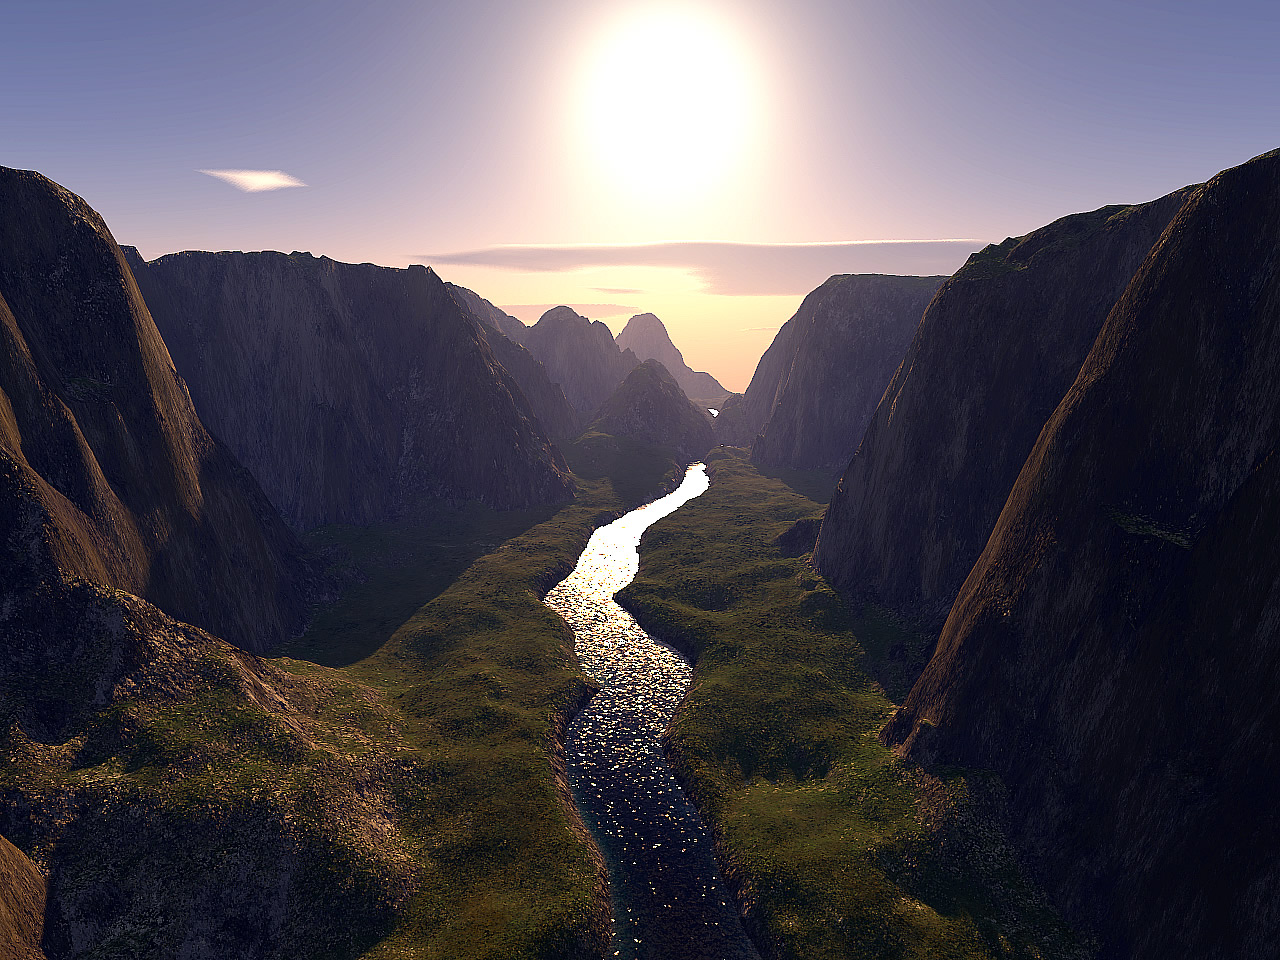 Download 3d Landscape wallpaper, '3d landscape 119'.